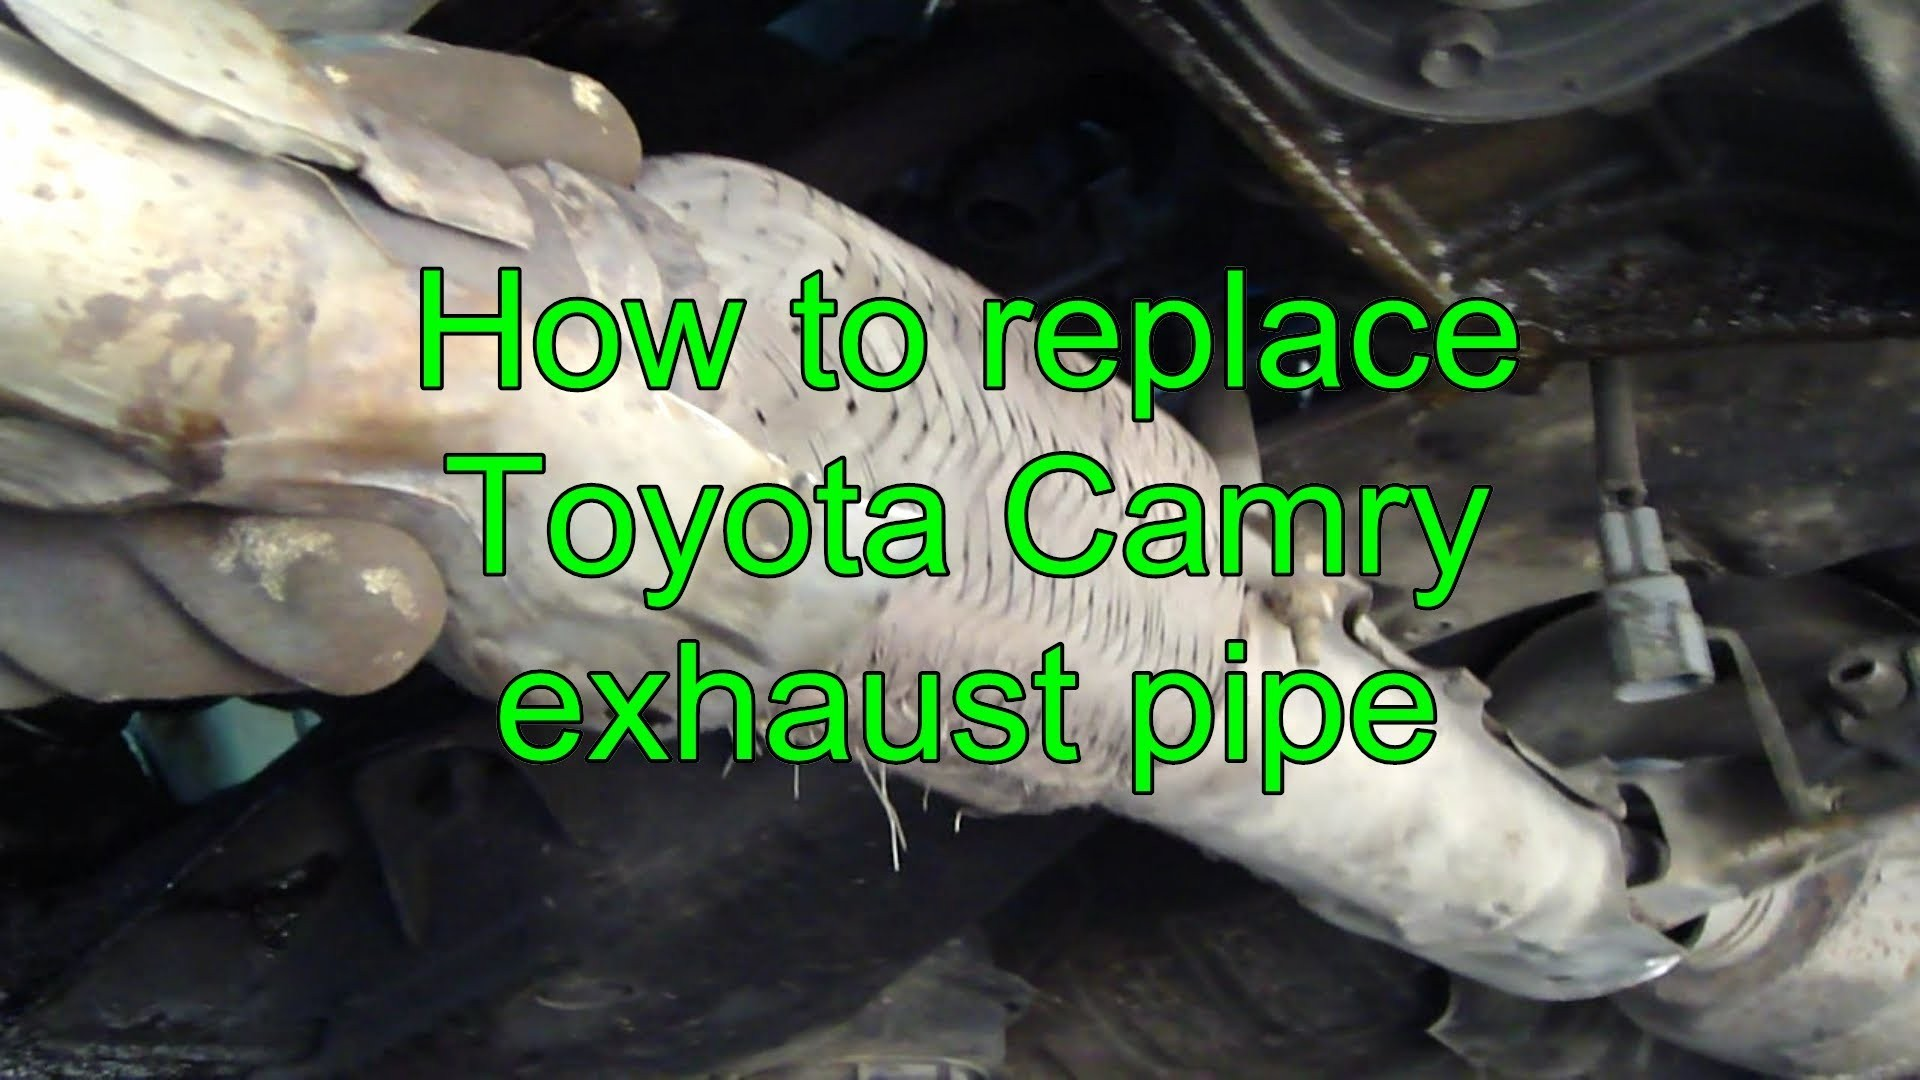 hight resolution of 2000 toyota camry engine diagram how to replace toyota camry exhaust pipe years 1992 to 2002